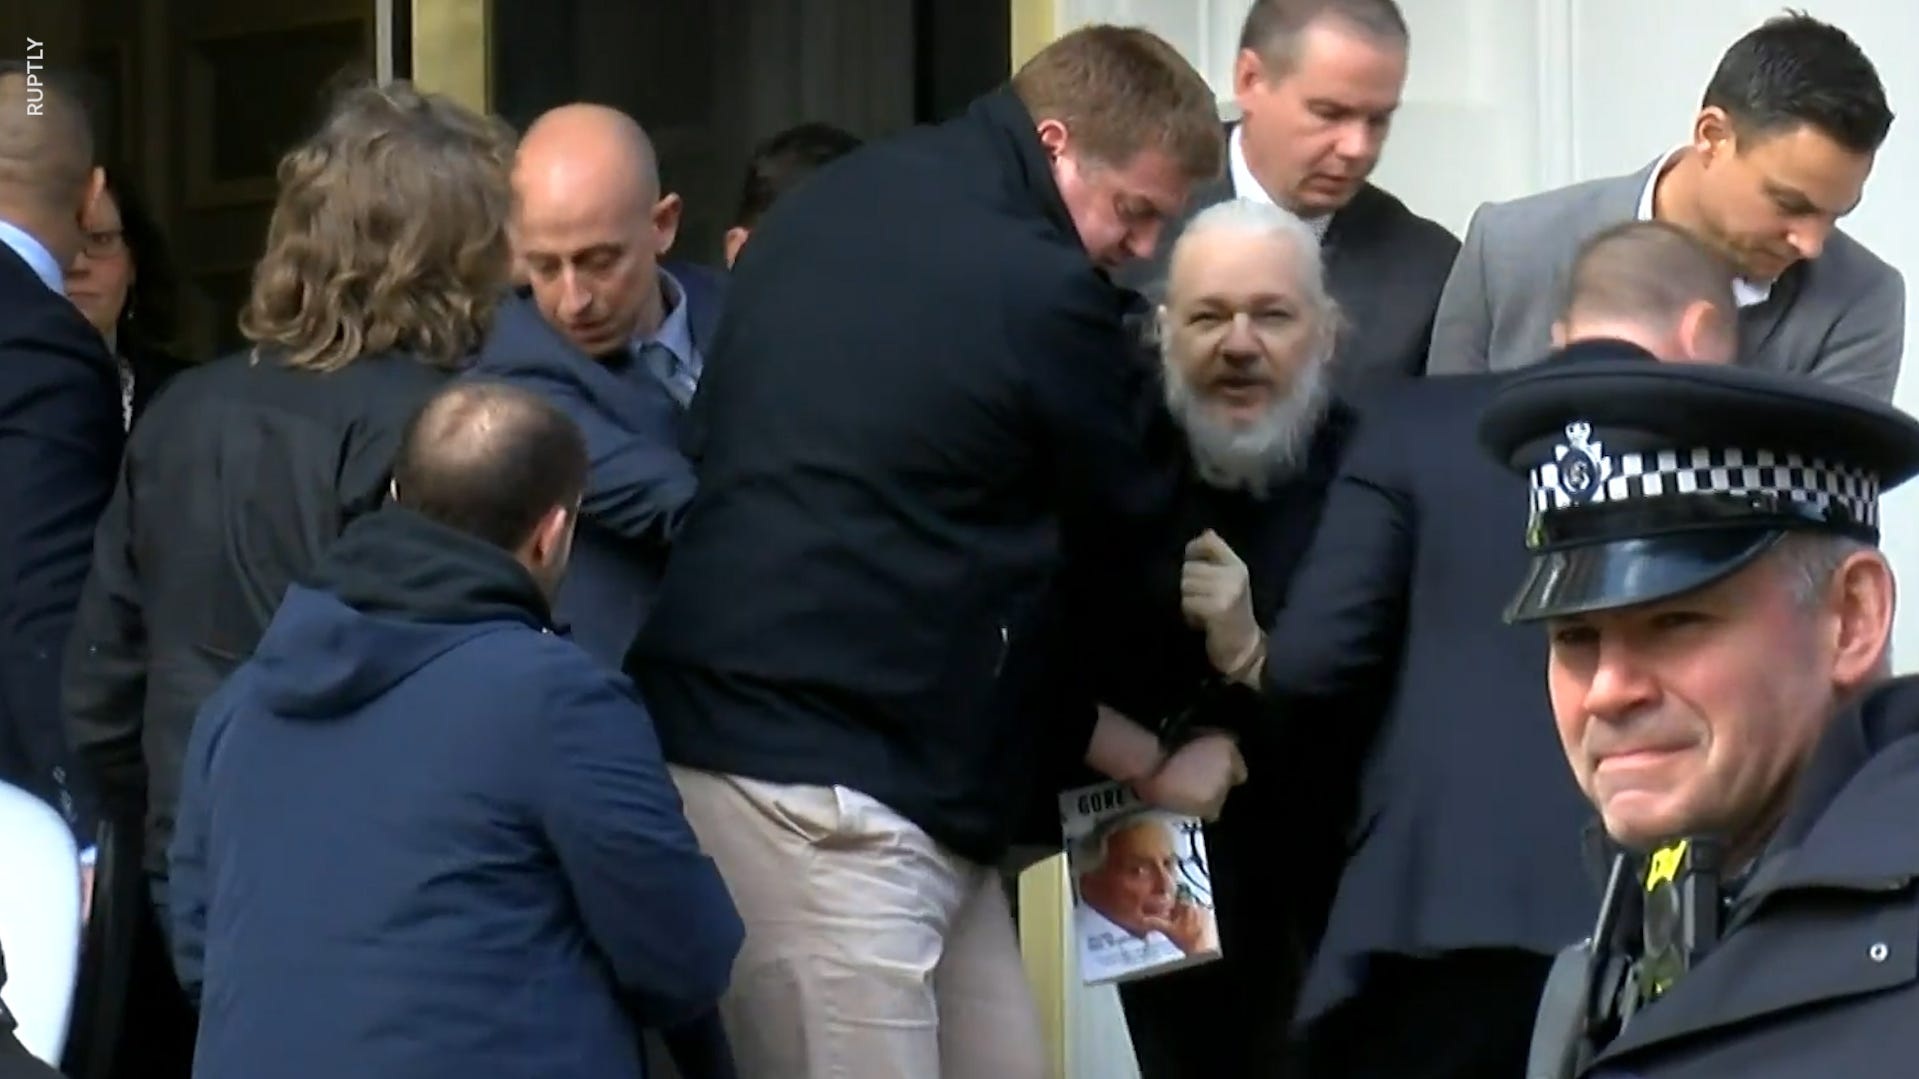 Julian Assange, WikiLeaks founder, was holding Gore Vidal book during arrest